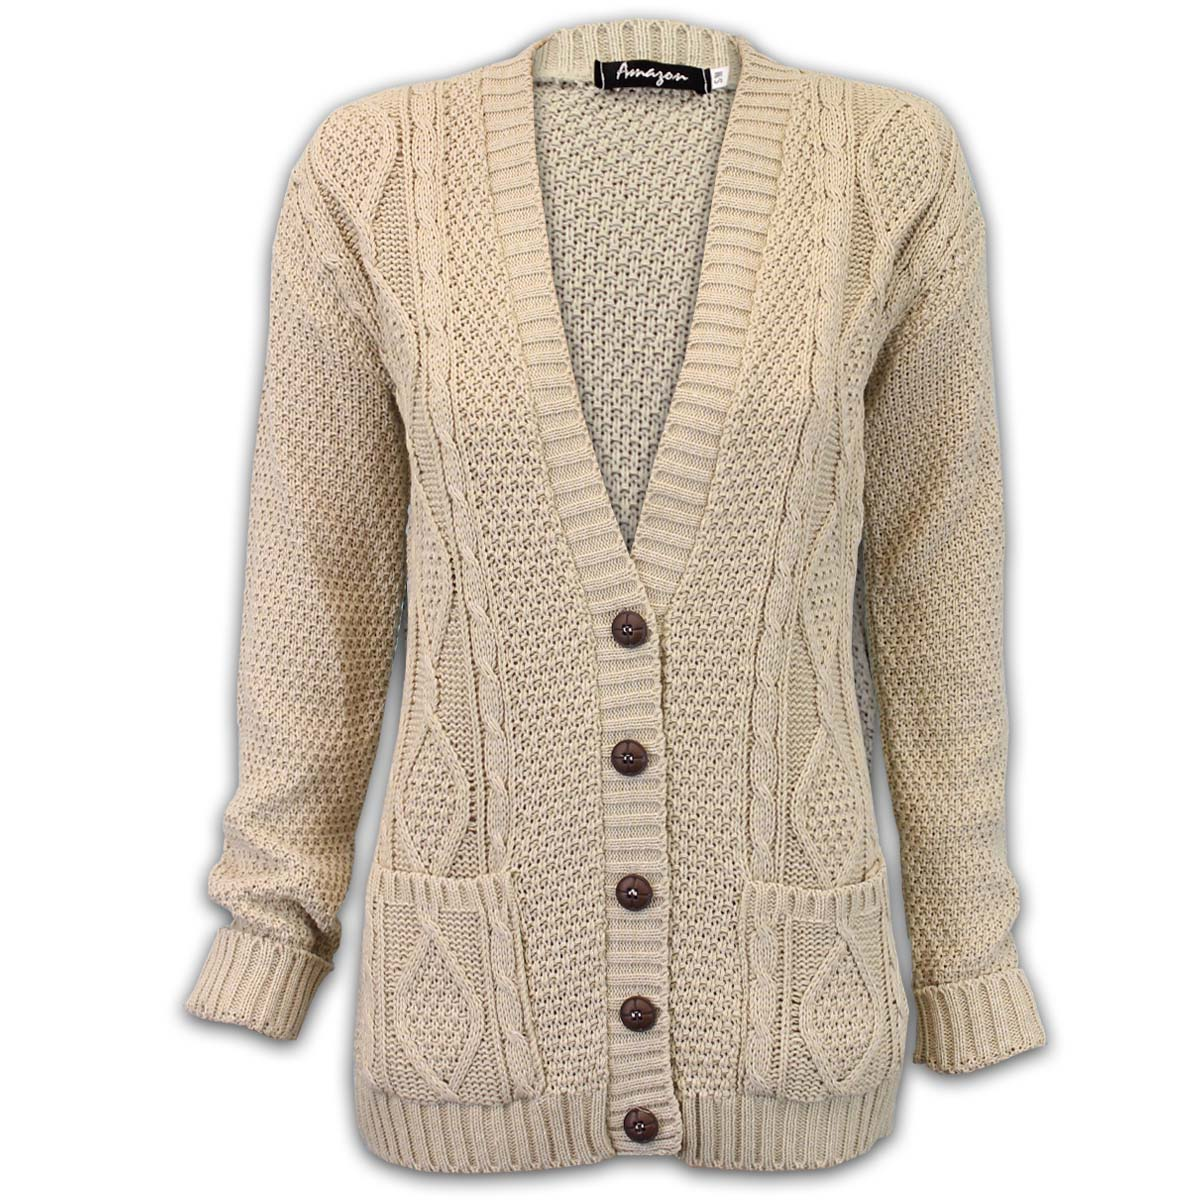 Hand-Knit Sweaters: Handcrafted cardigans and pullover sweaters at NOVICA, in association with National Geographic. Discover extraordinary hand-knit wool and cotton sweaters at incredible prices from talented artisans worldwide.